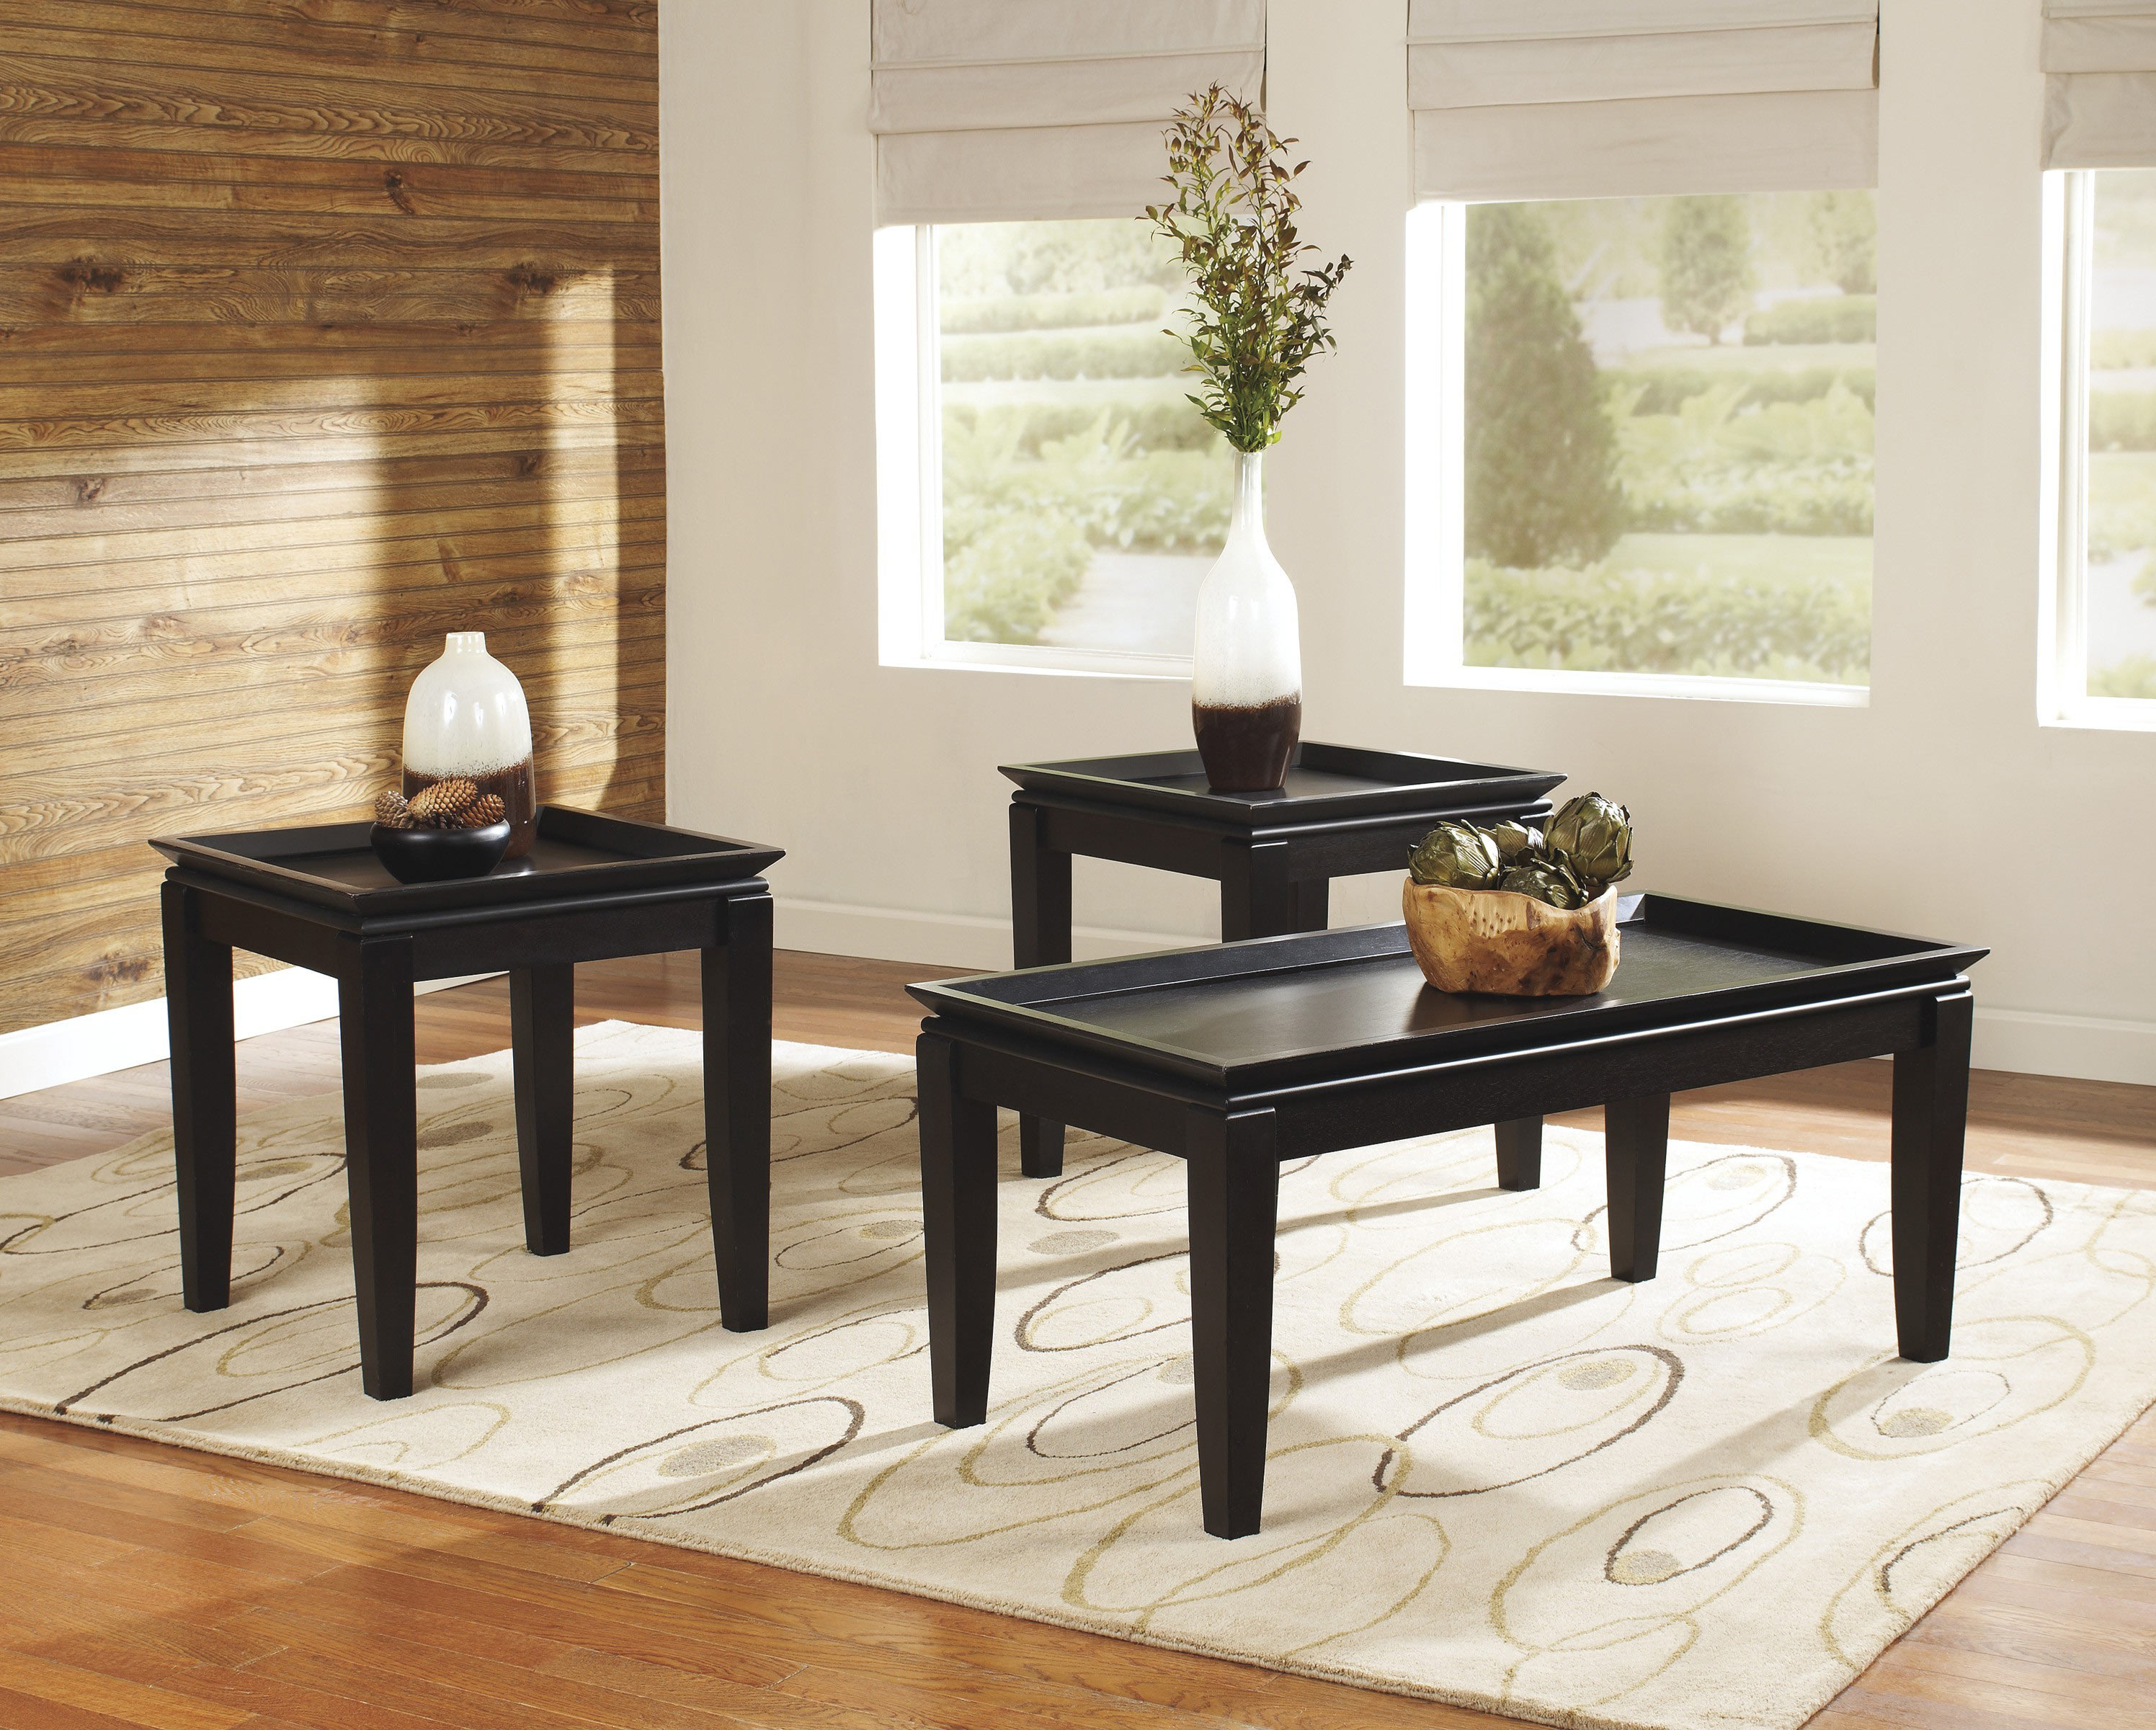 modern black glass coffee tables under $200